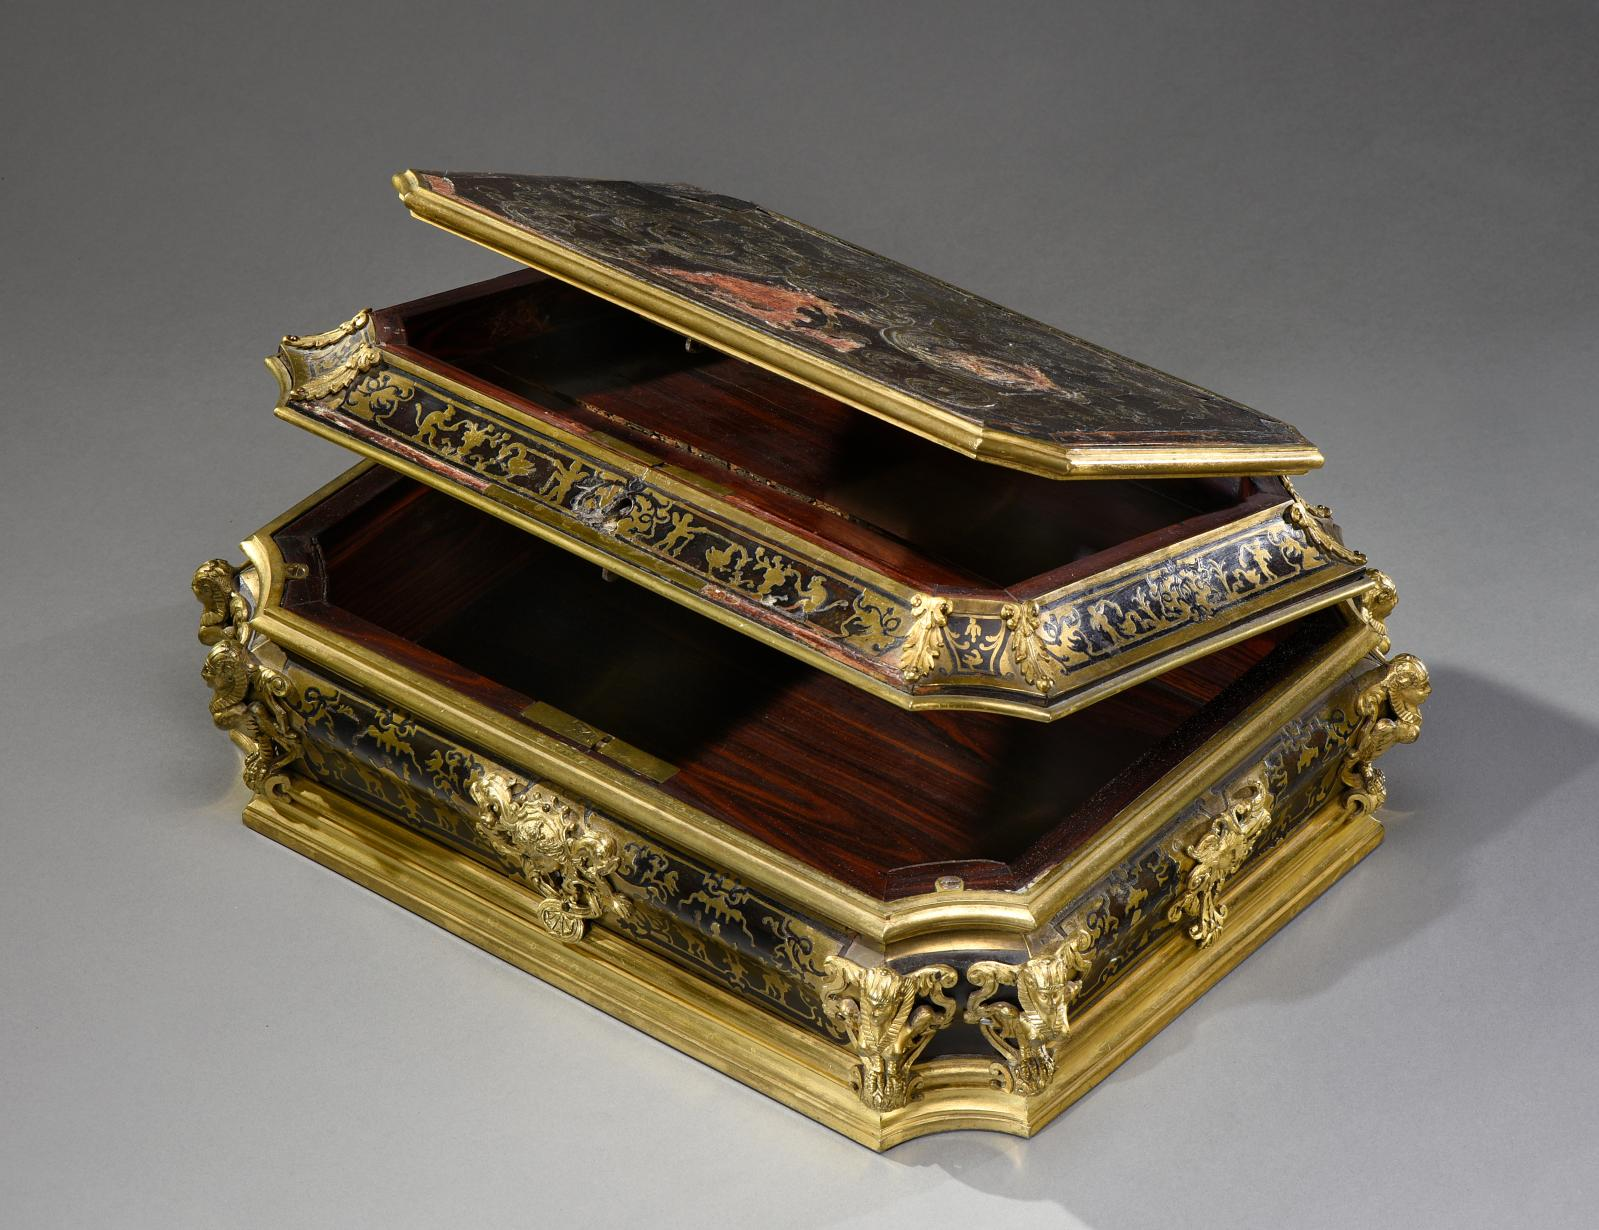 Moulded, curved Louis XIV case, late 17th to early 18th century, brown tortoiseshell veneer and engraved brass inlay, interior in violet w